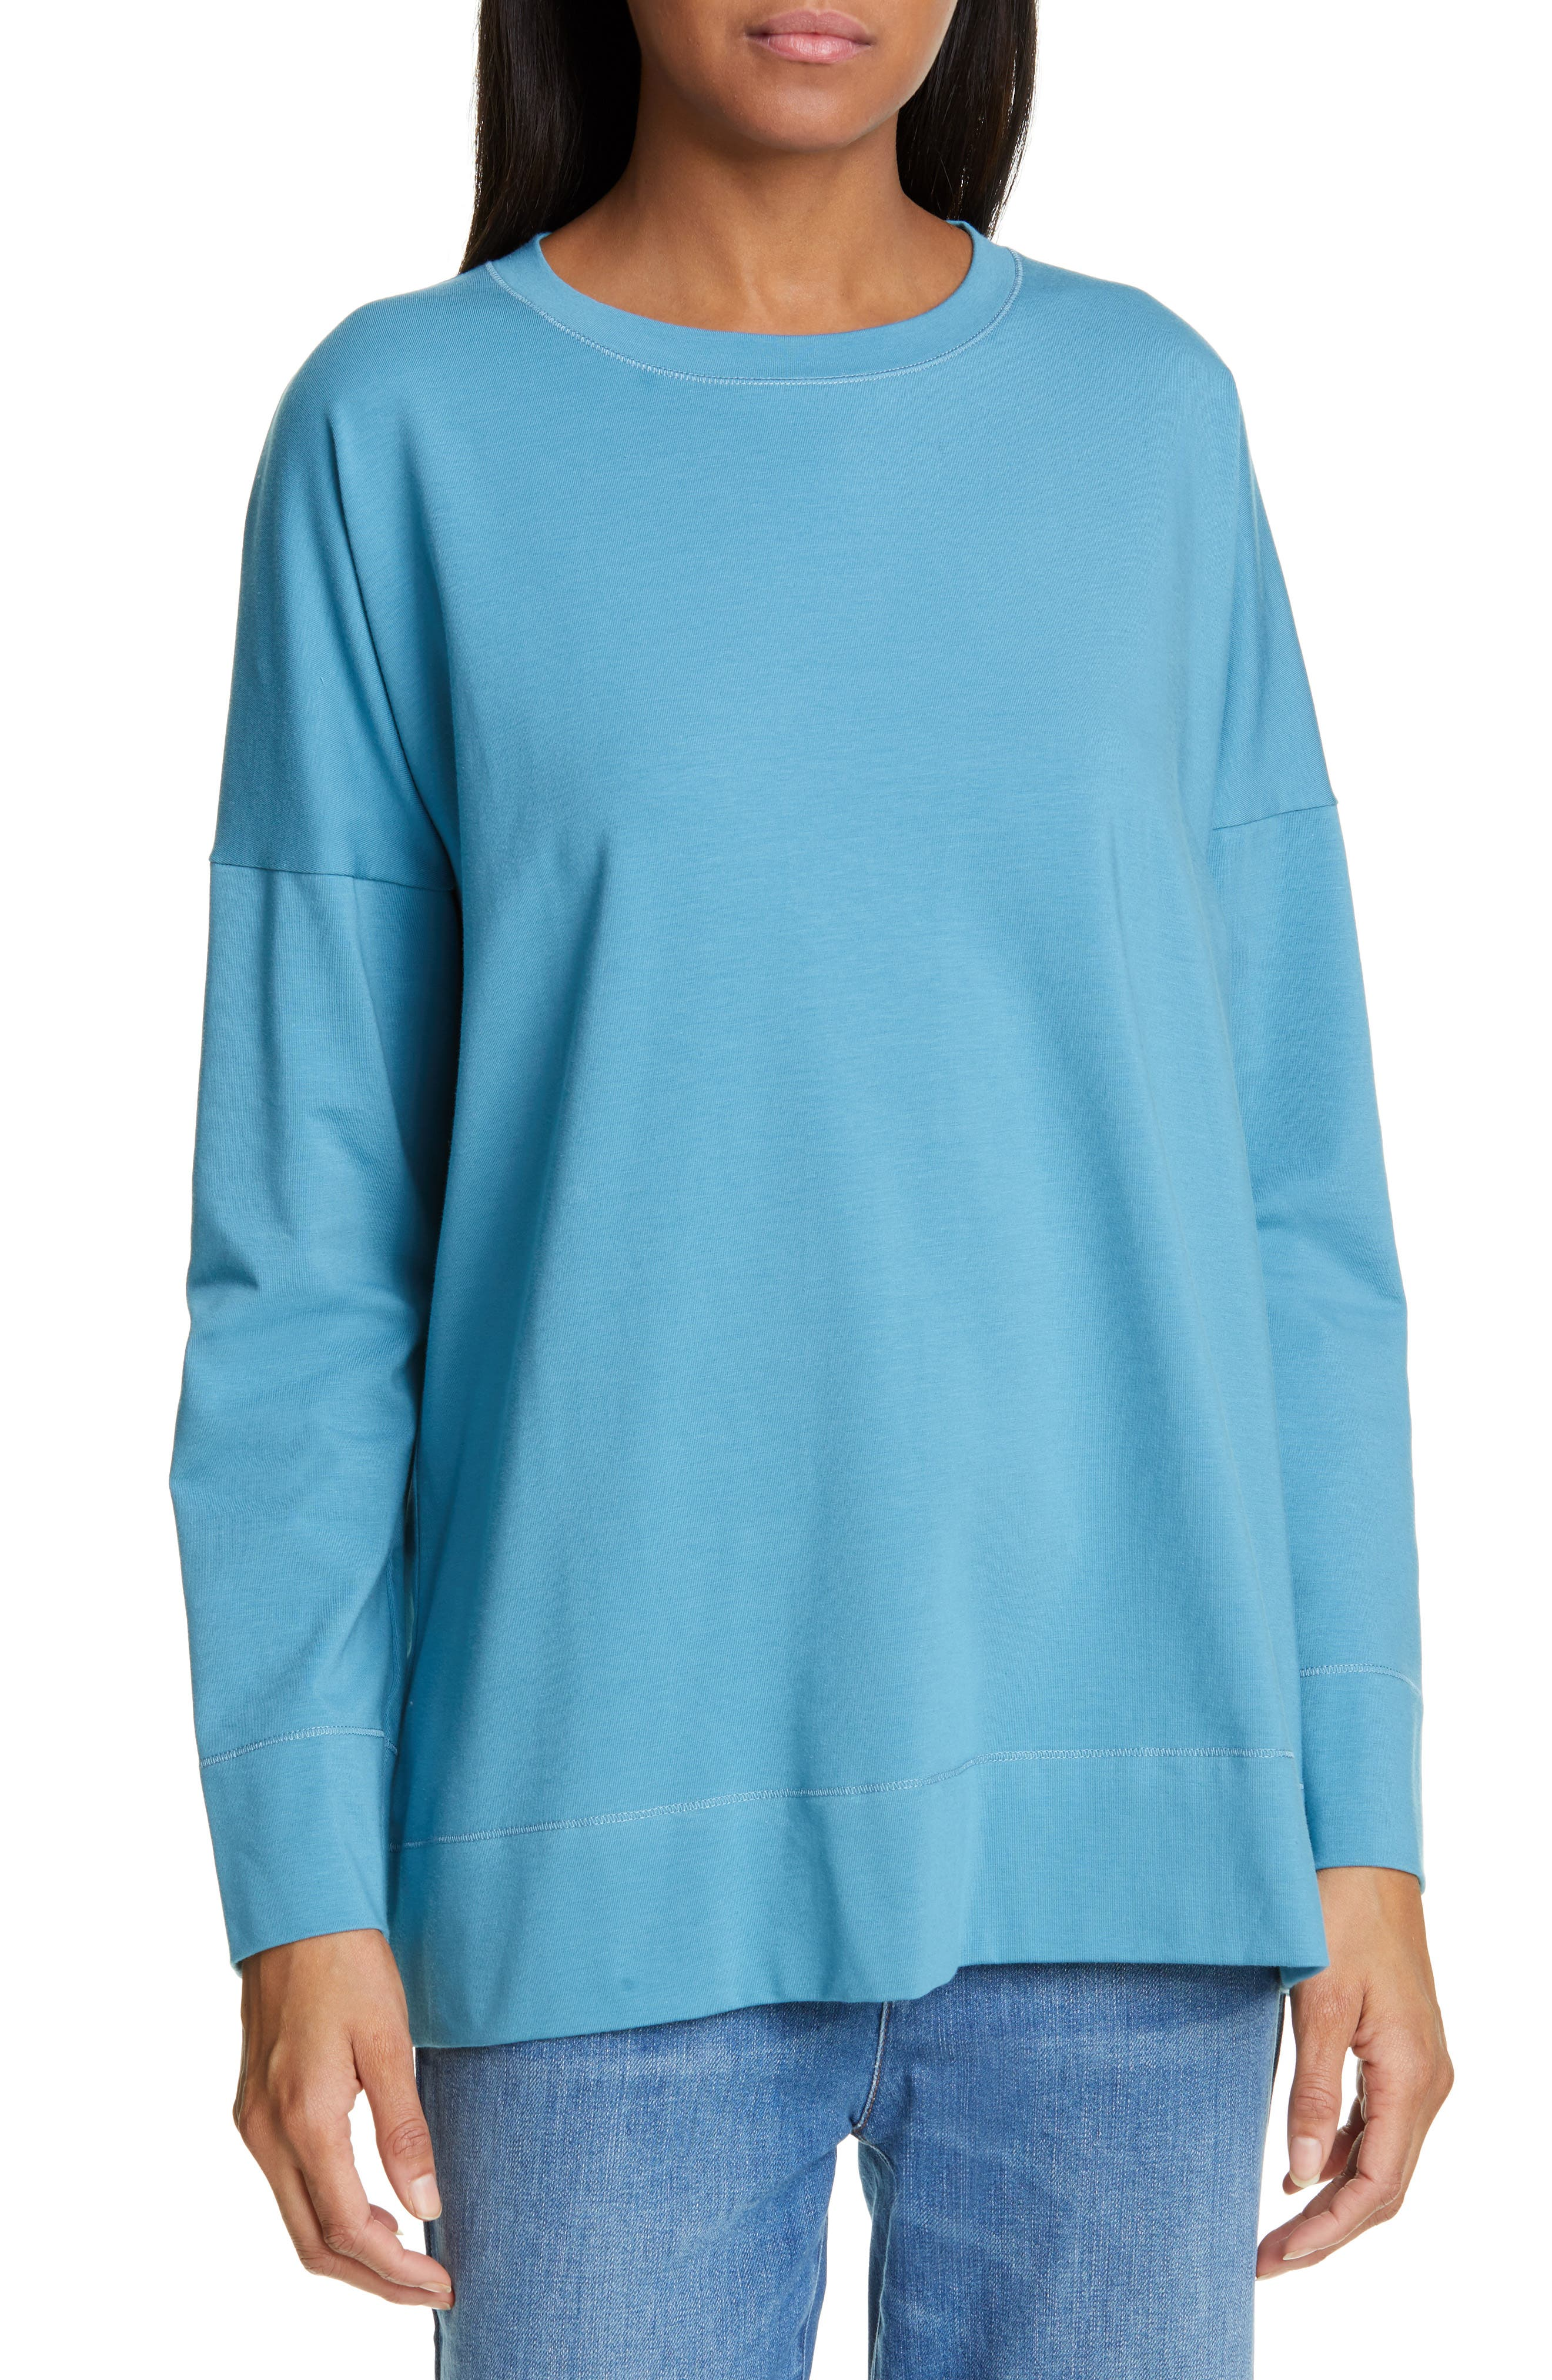 Eileen Fisher Tops STRETCH COTTON CREWNECK TOP